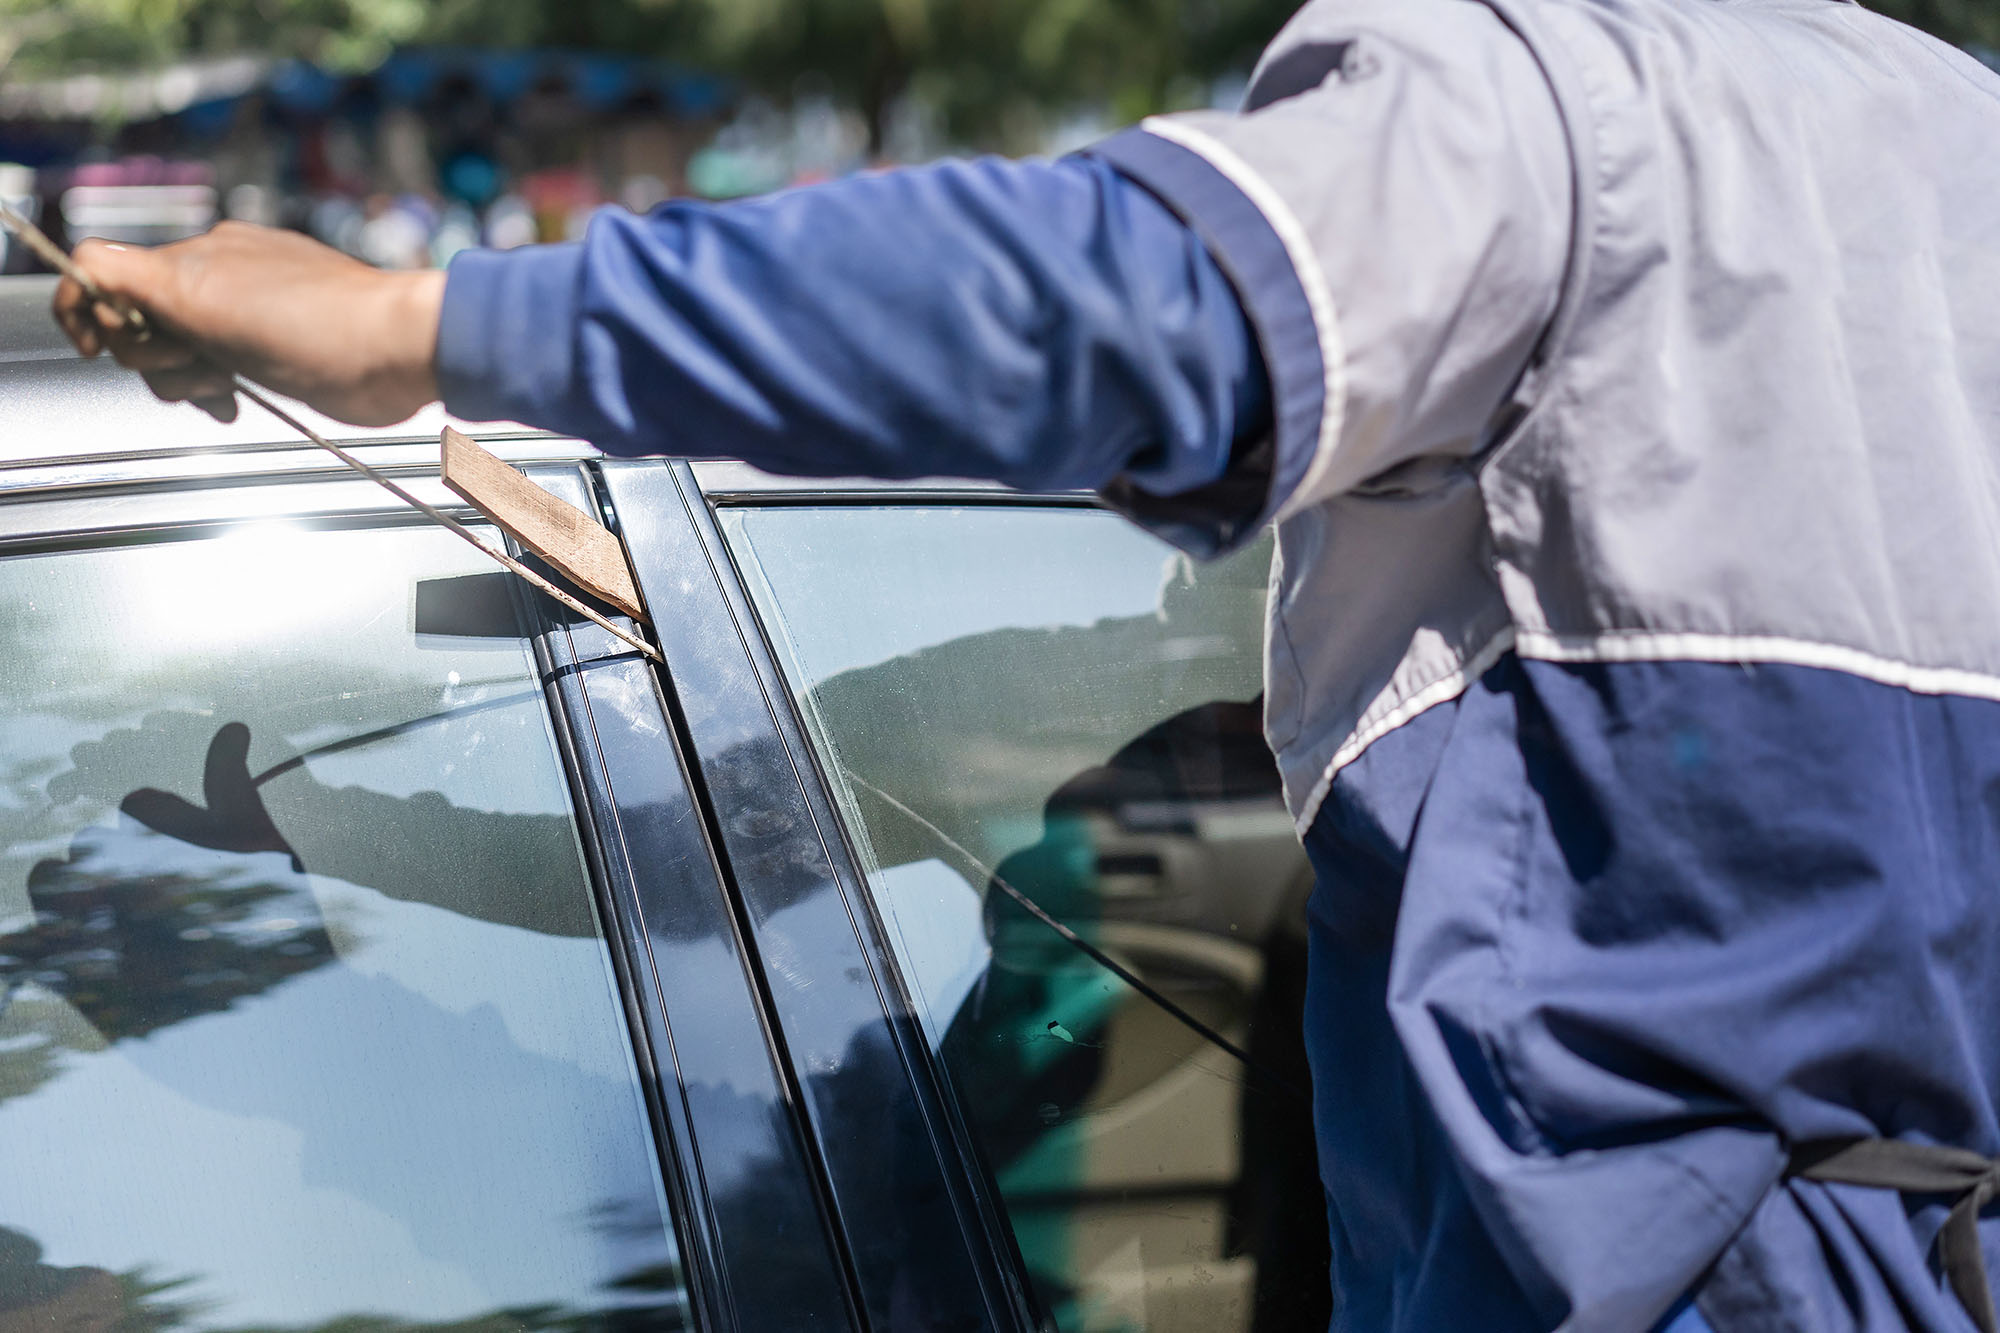 Lockout Services If Keys Locked in Car